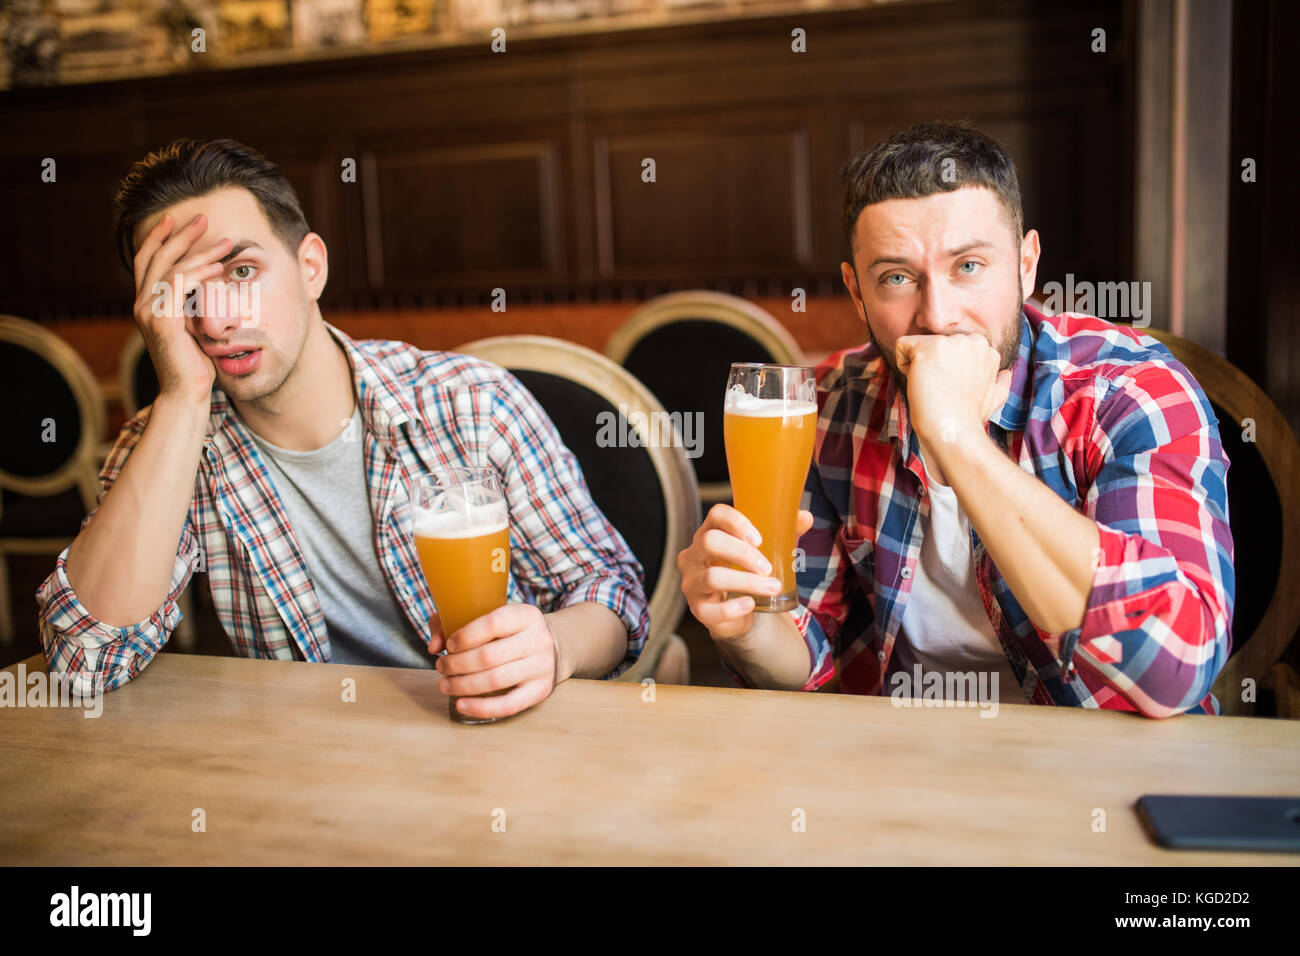 Young bearded man looking upset and sad having beer at the pub copyspace depression stress tired - Stock Image